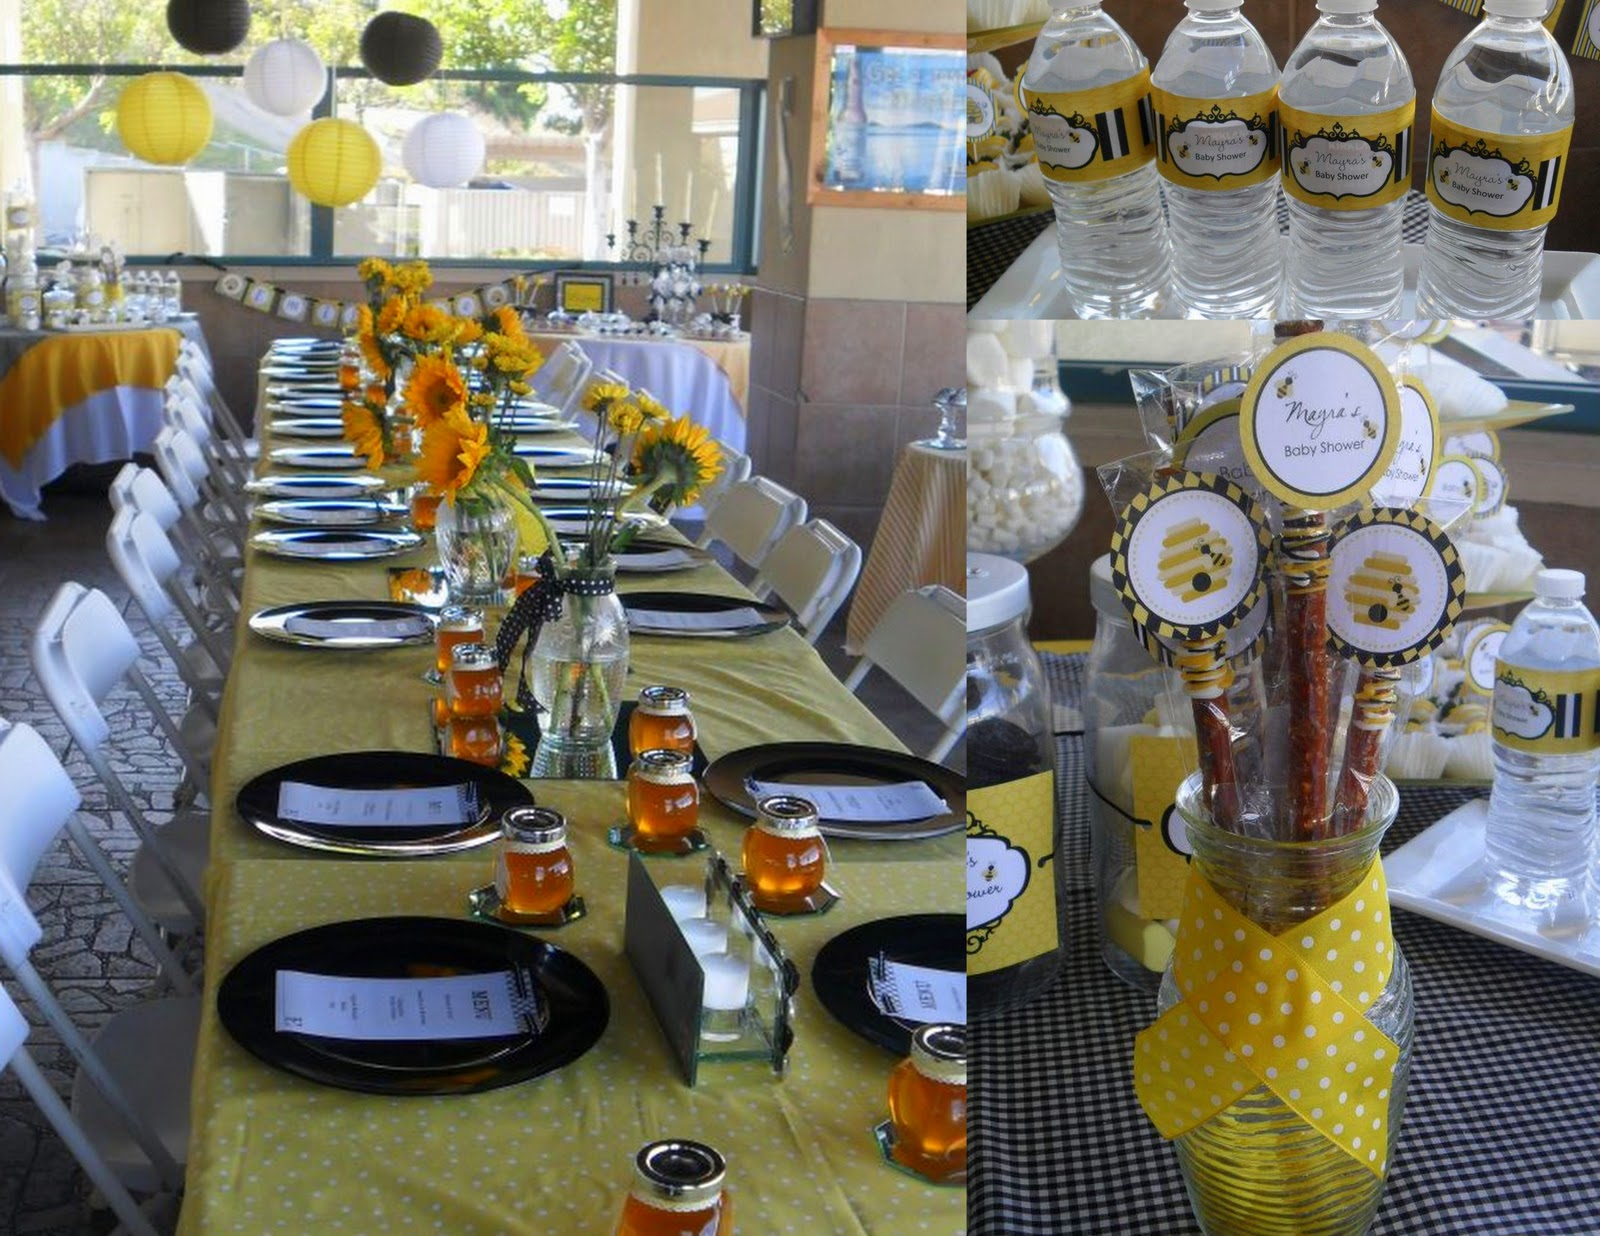 a criolla image brithday shower bumblebee bee decor favors bumble planning baby of ideas decorations wedding